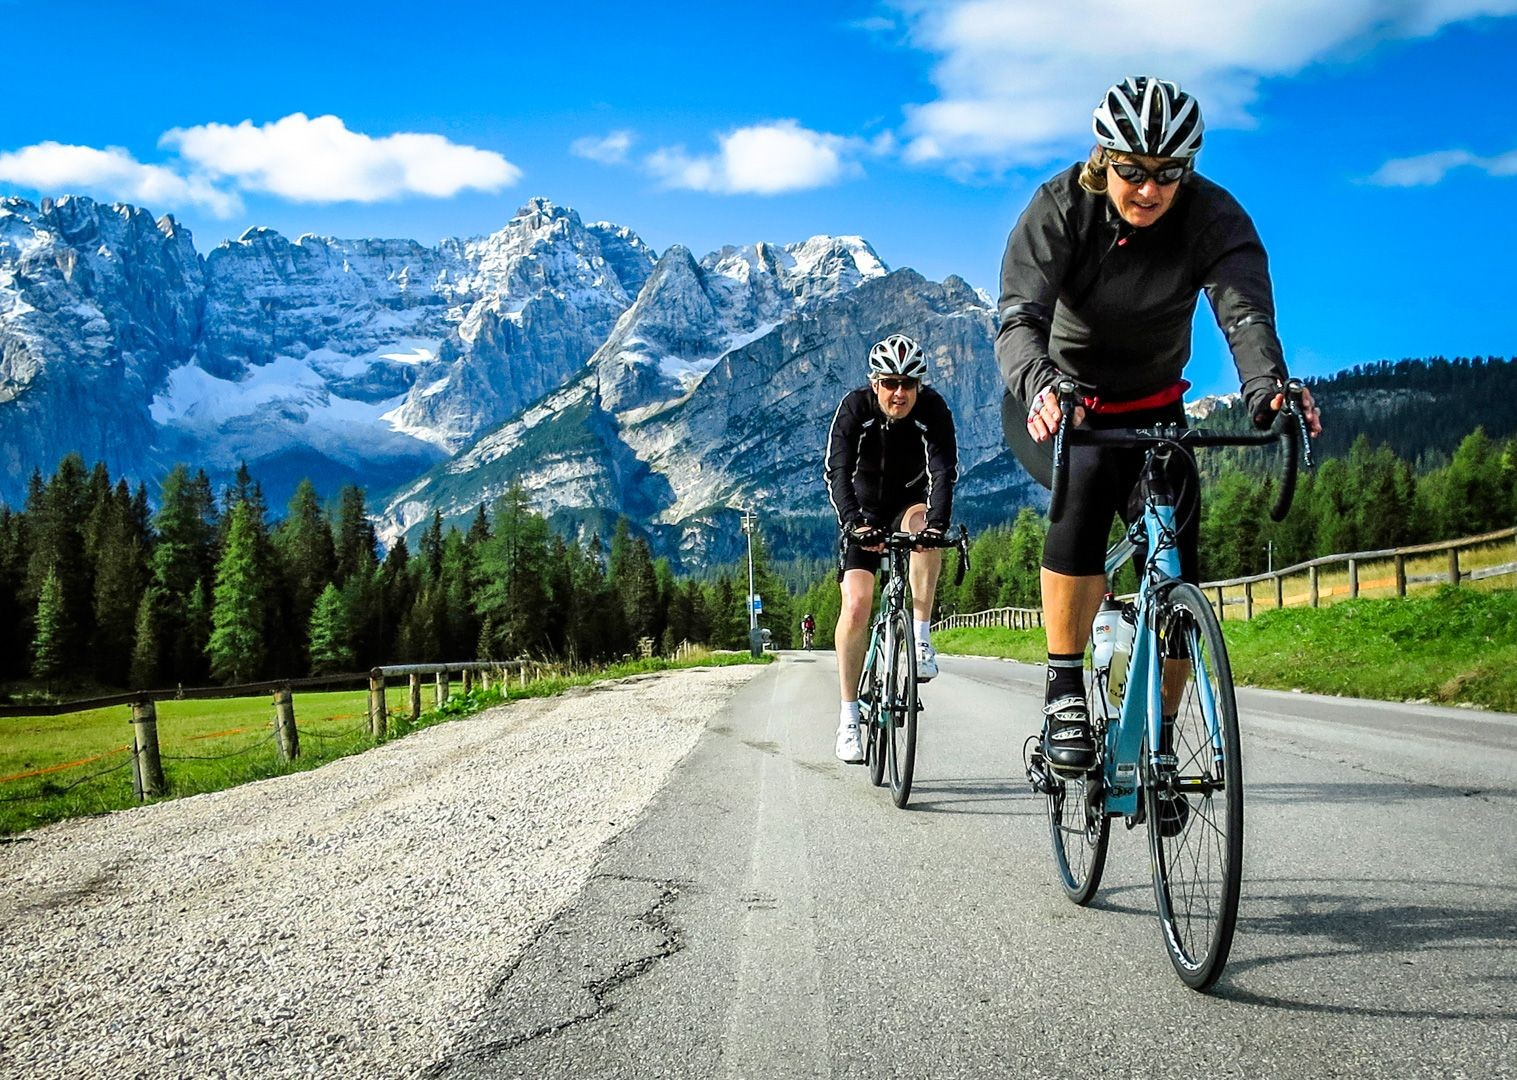 sella-ronda-italy-road-cycling-gran-fondo-holiday.jpg - Italy - Italian Dolomites - Guided Road Cycling Holiday - Road Cycling